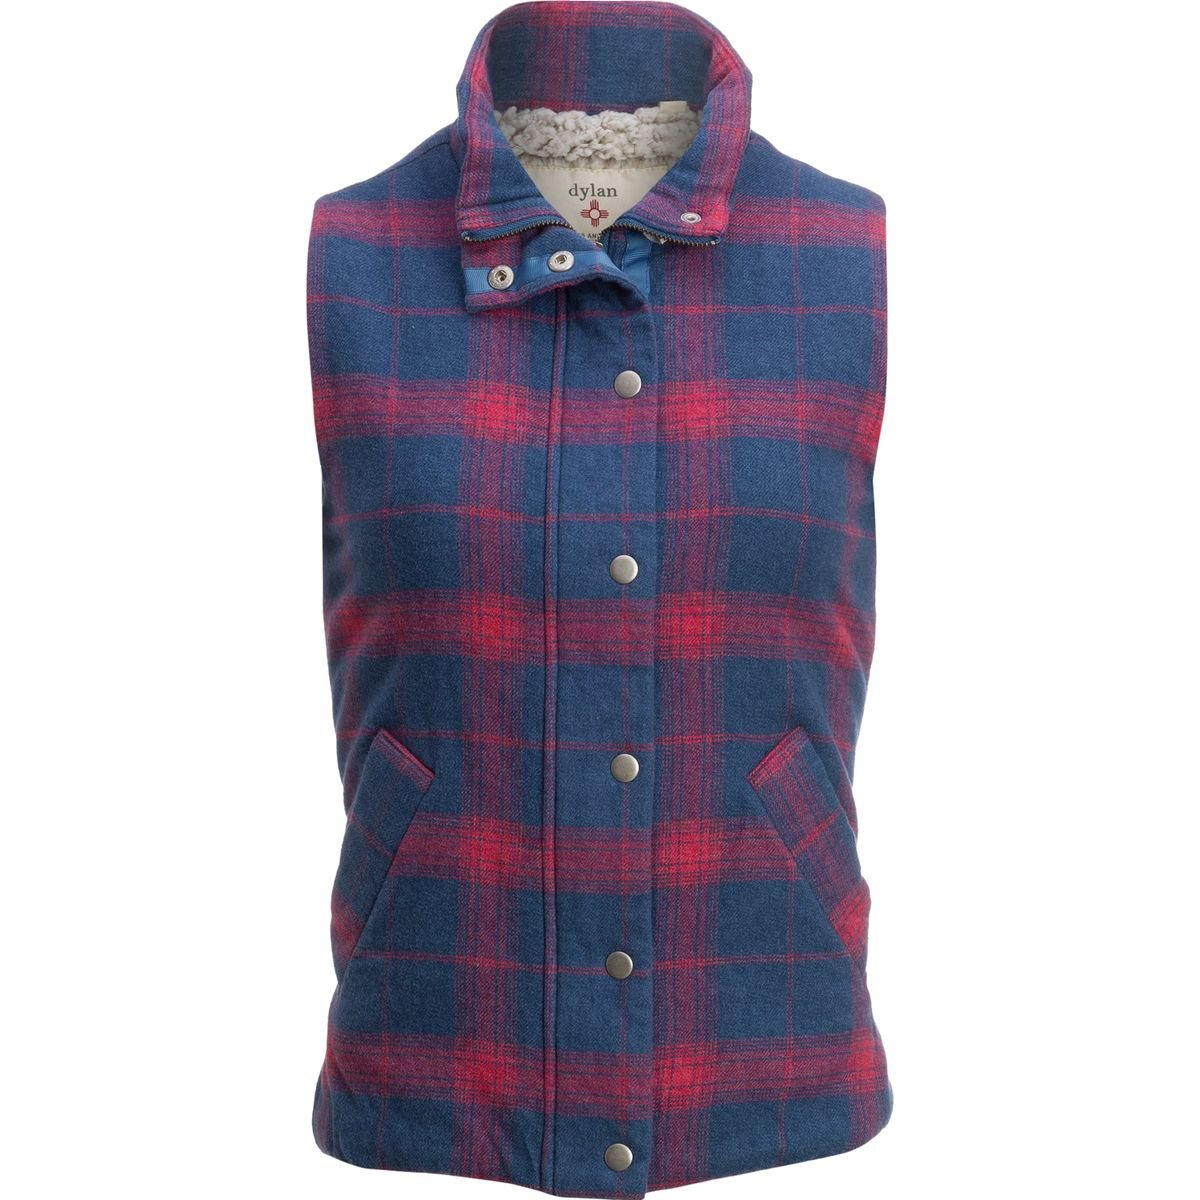 Dylan Melange Flannel & Frosty Tipped Classic Vest - Women's Blue/Red, M